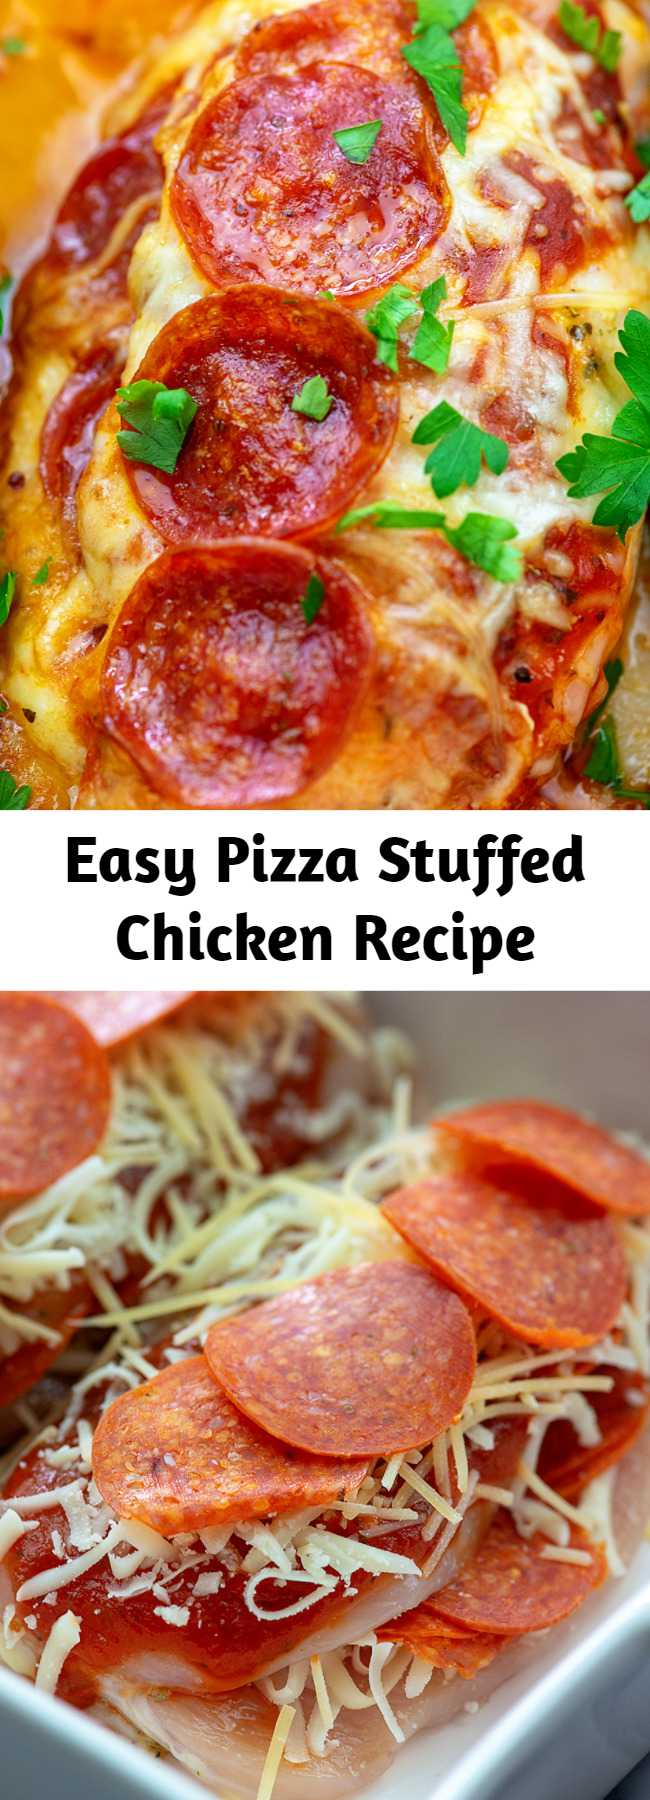 Easy Pizza Stuffed Chicken Recipe - If you're craving pizza, this stuffed chicken recipe will do the trick nicely! We use pepperoni since that's what we love on our pizza, but feel free to add a few of your favorite toppings! This quickly became one of the most requested recipes by my kids and I love it because it's low carb and super easy prep. #chicken #lowcarb #keto #pizza